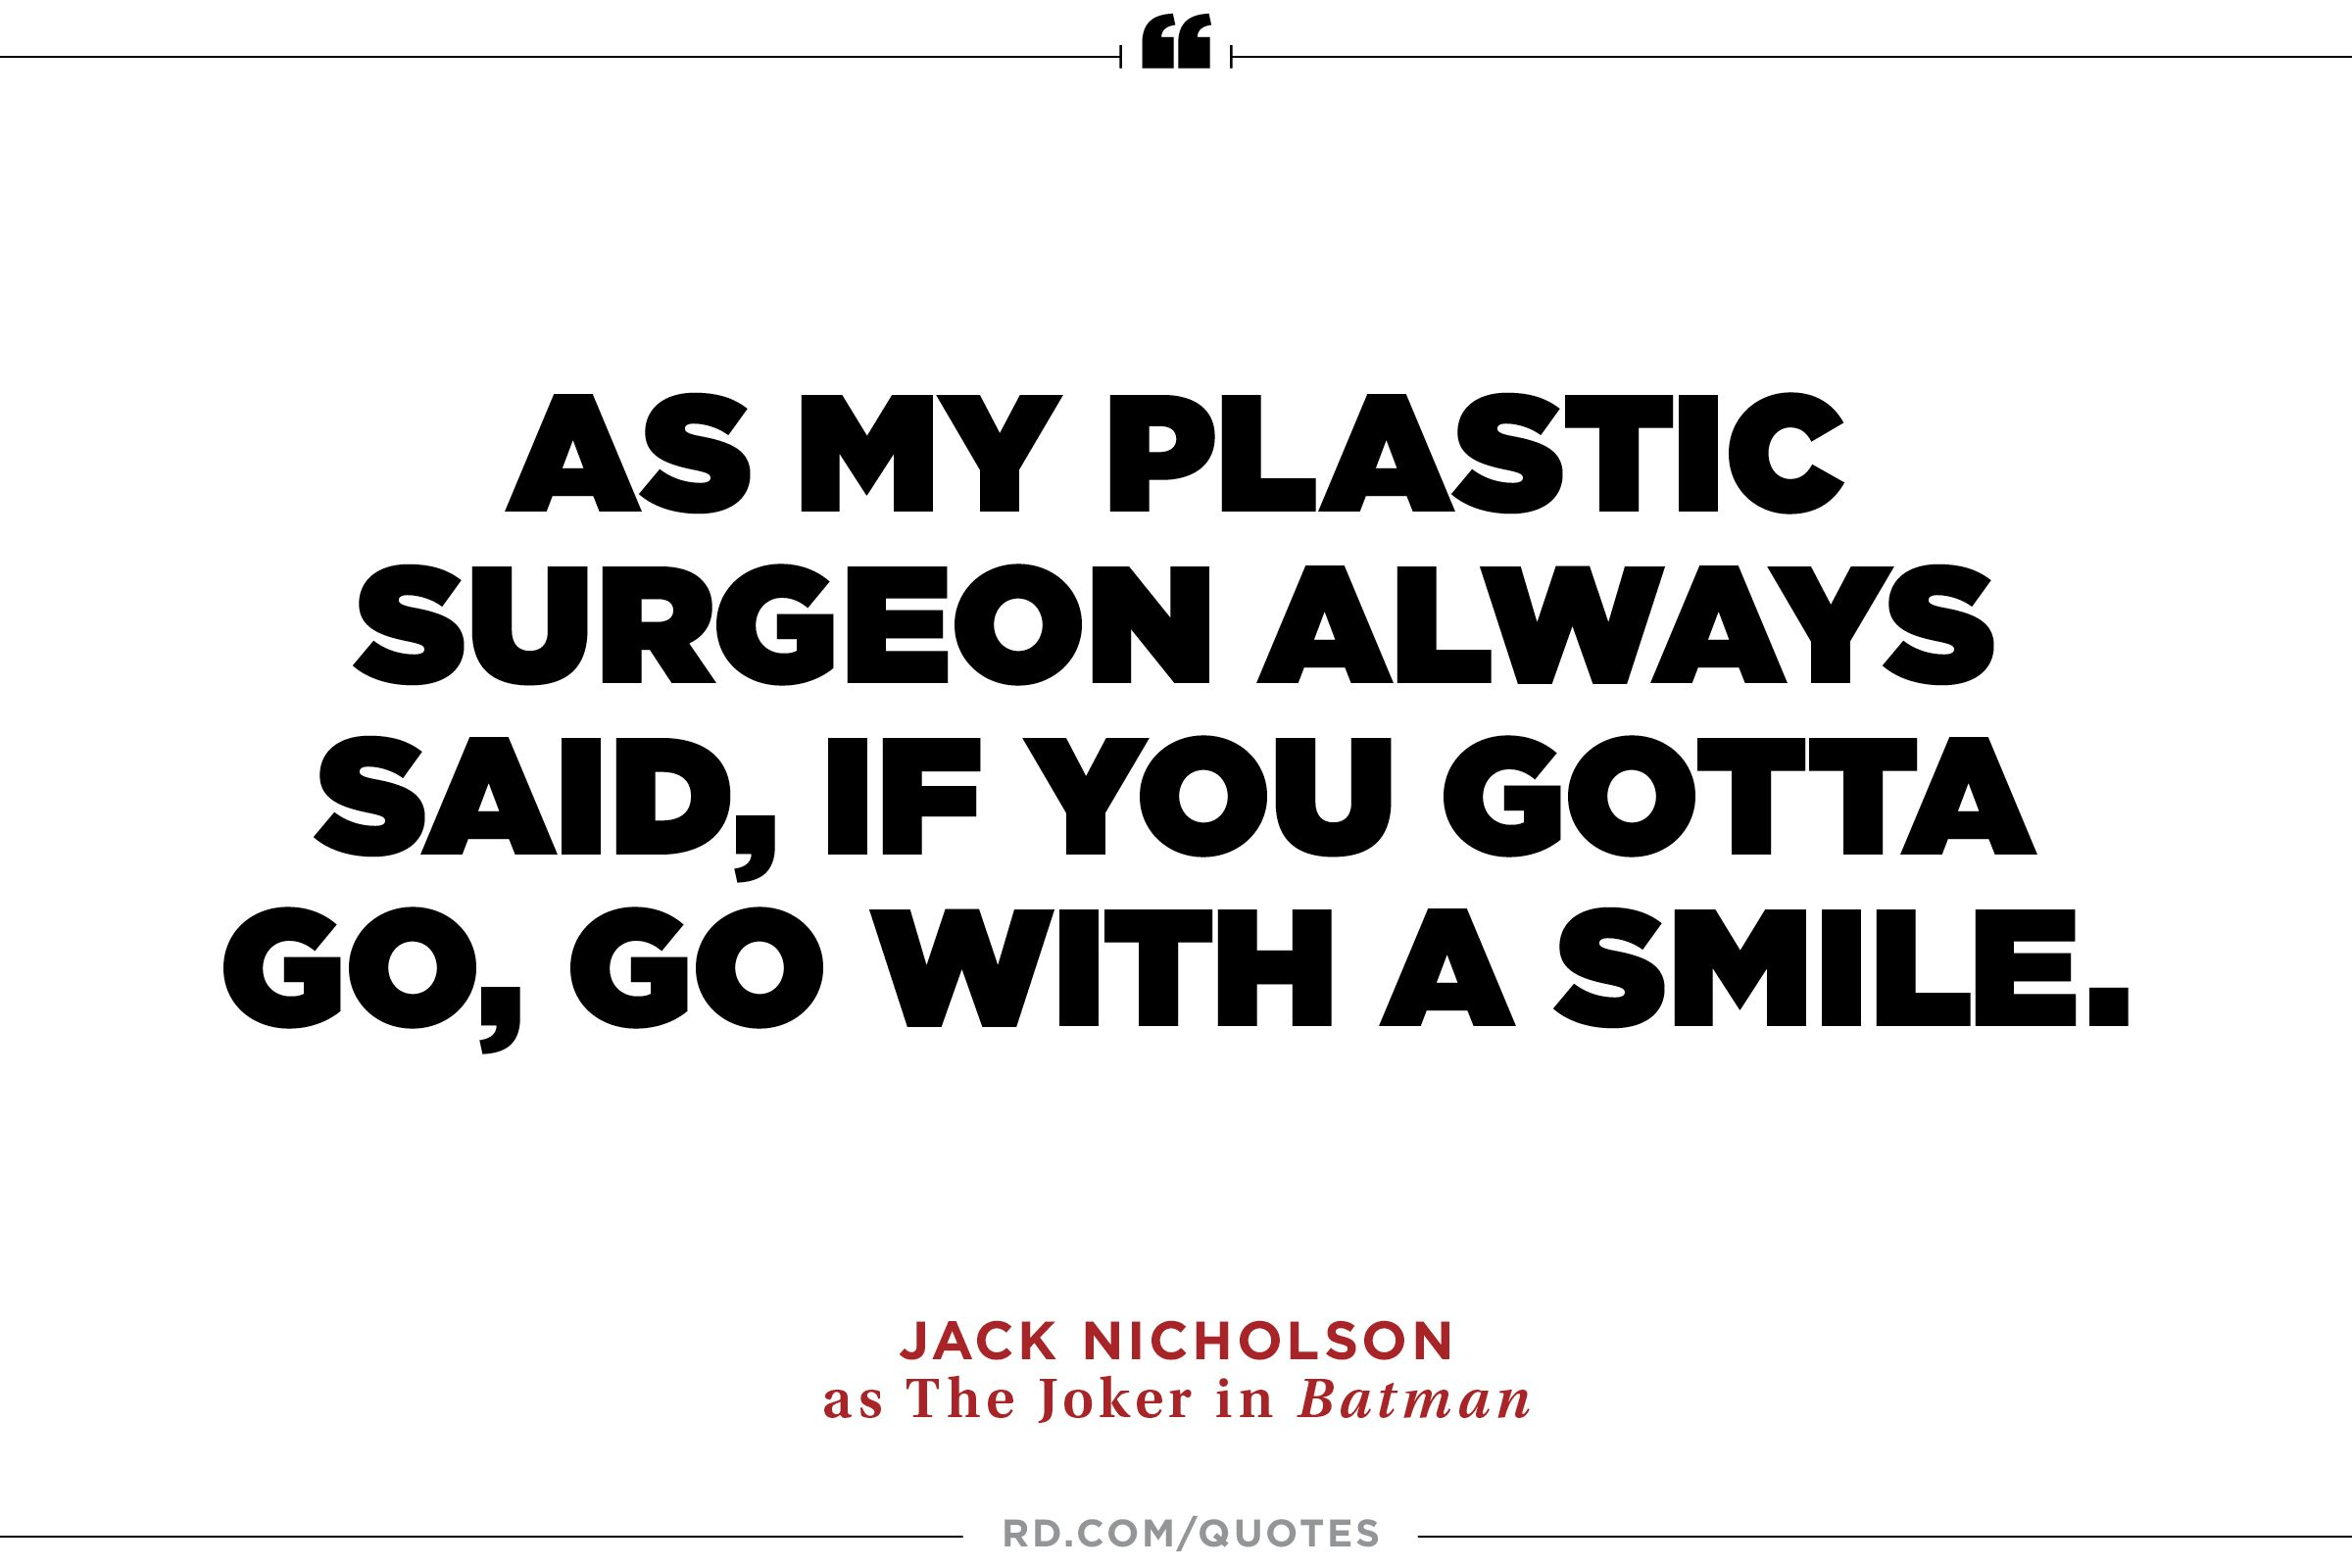 As my plastic surgeon always said,